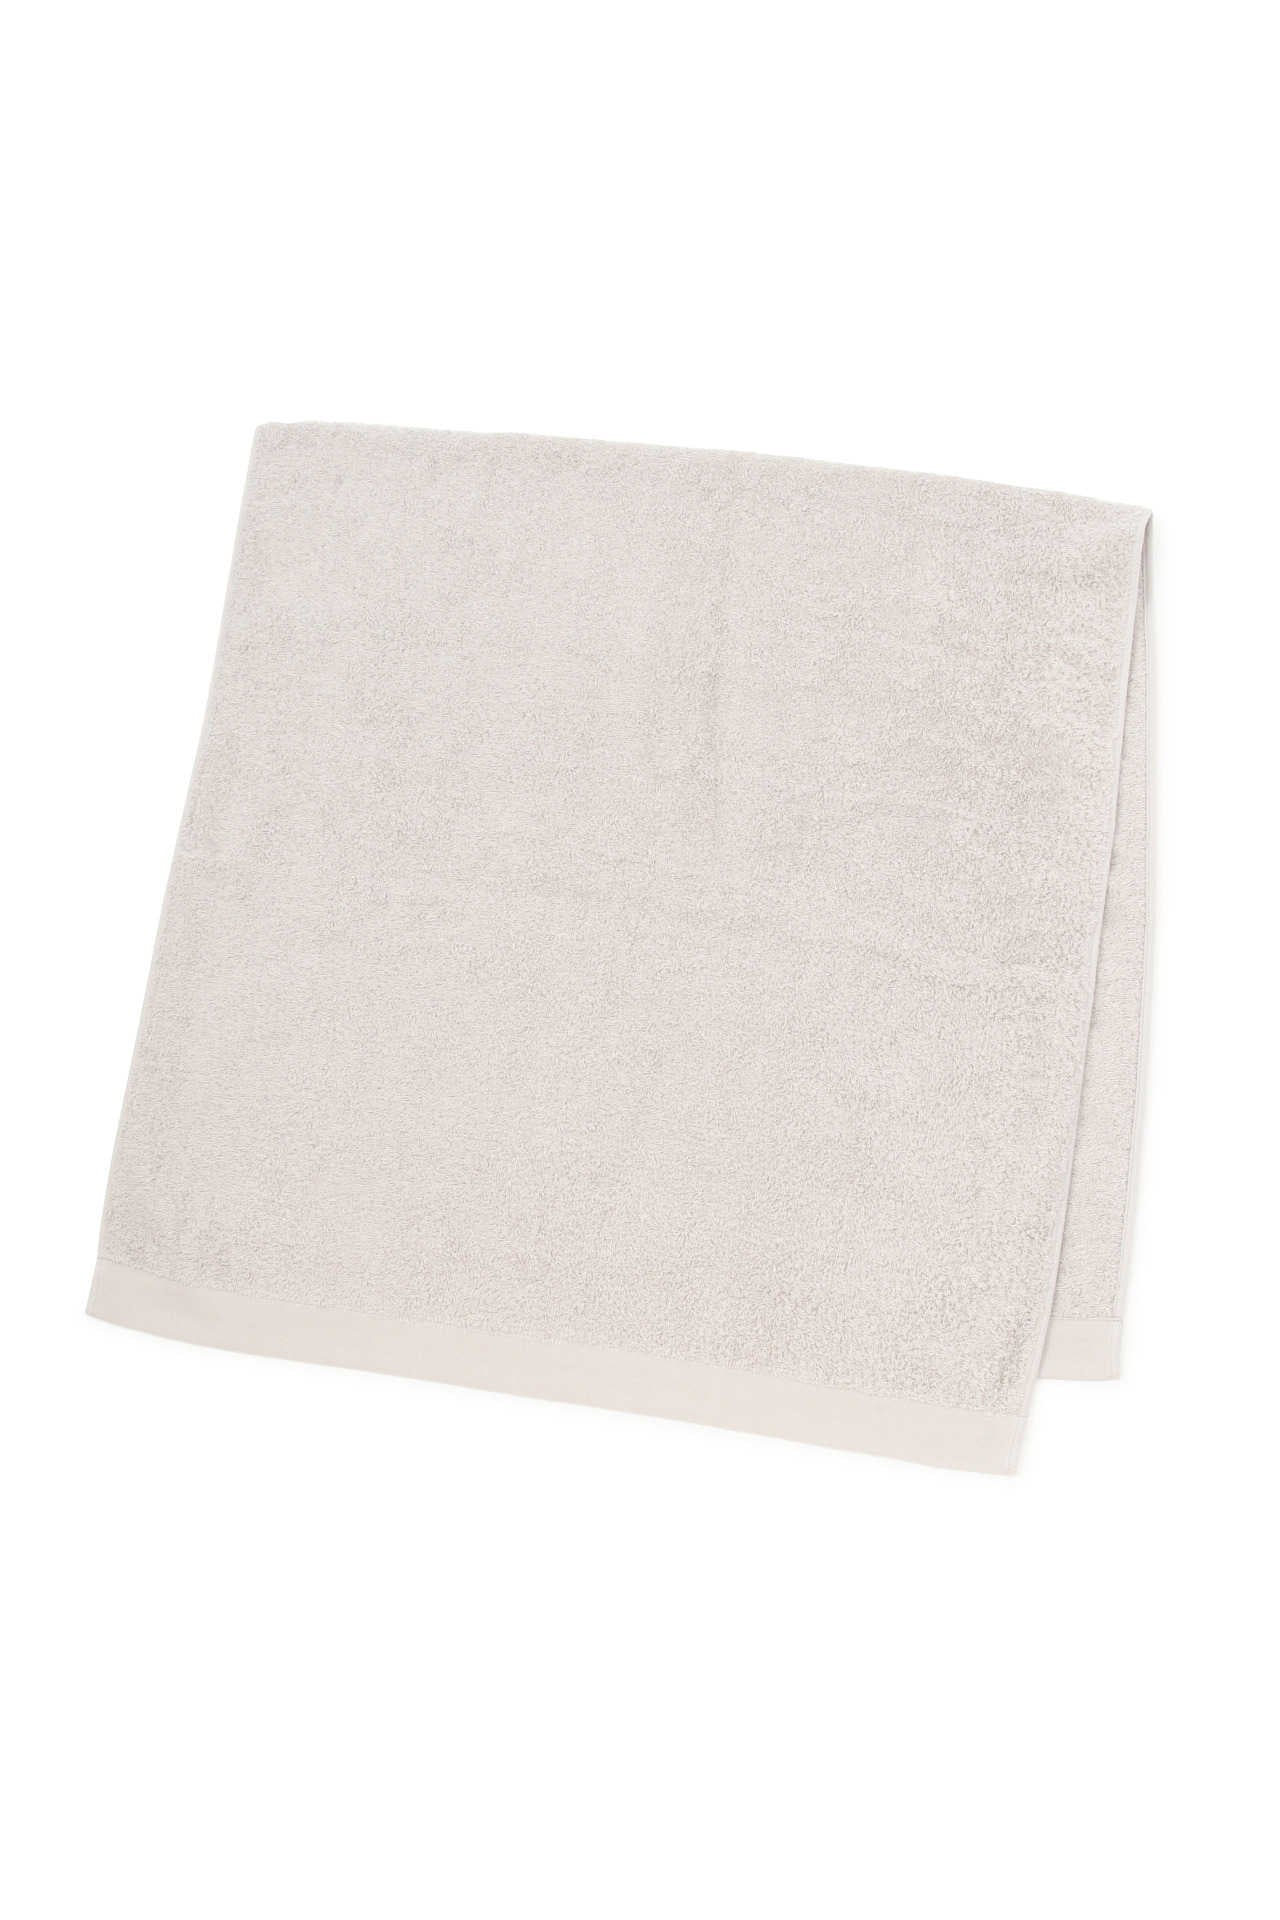 COTTON RAMIE TOWEL2